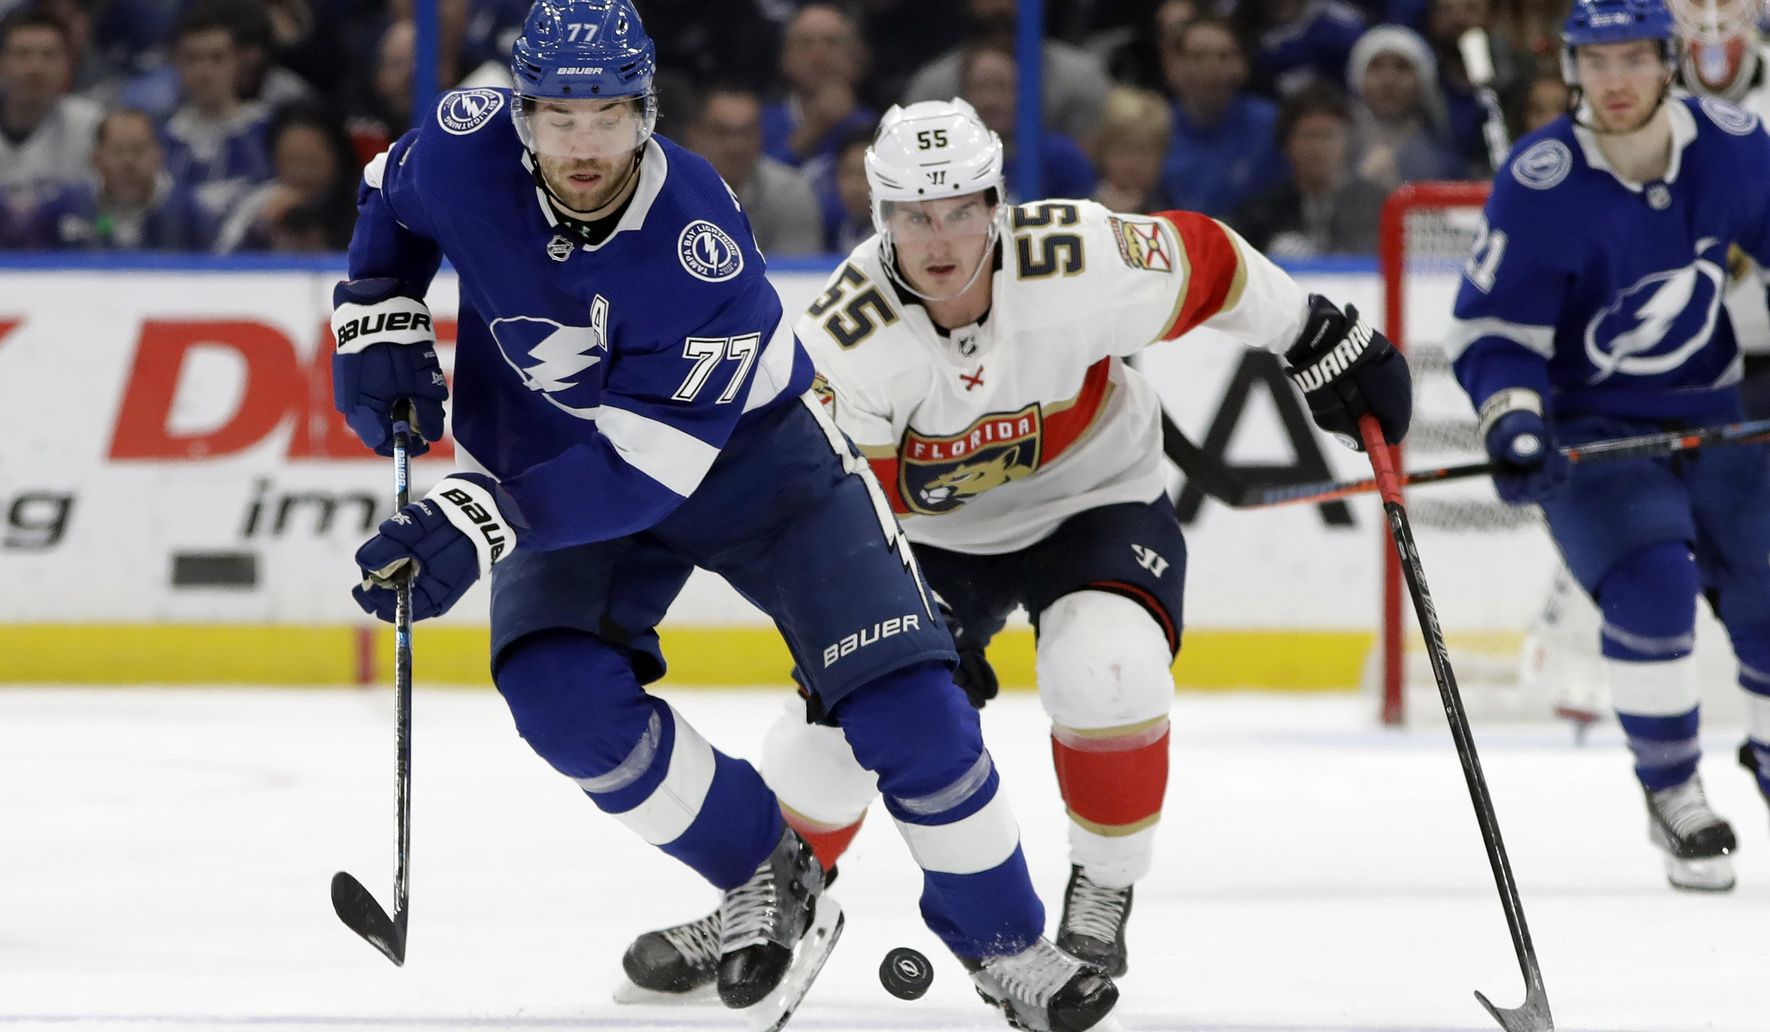 Panthers_lightning_hockey_64168_c0-176-4200-2624_s1770x1032